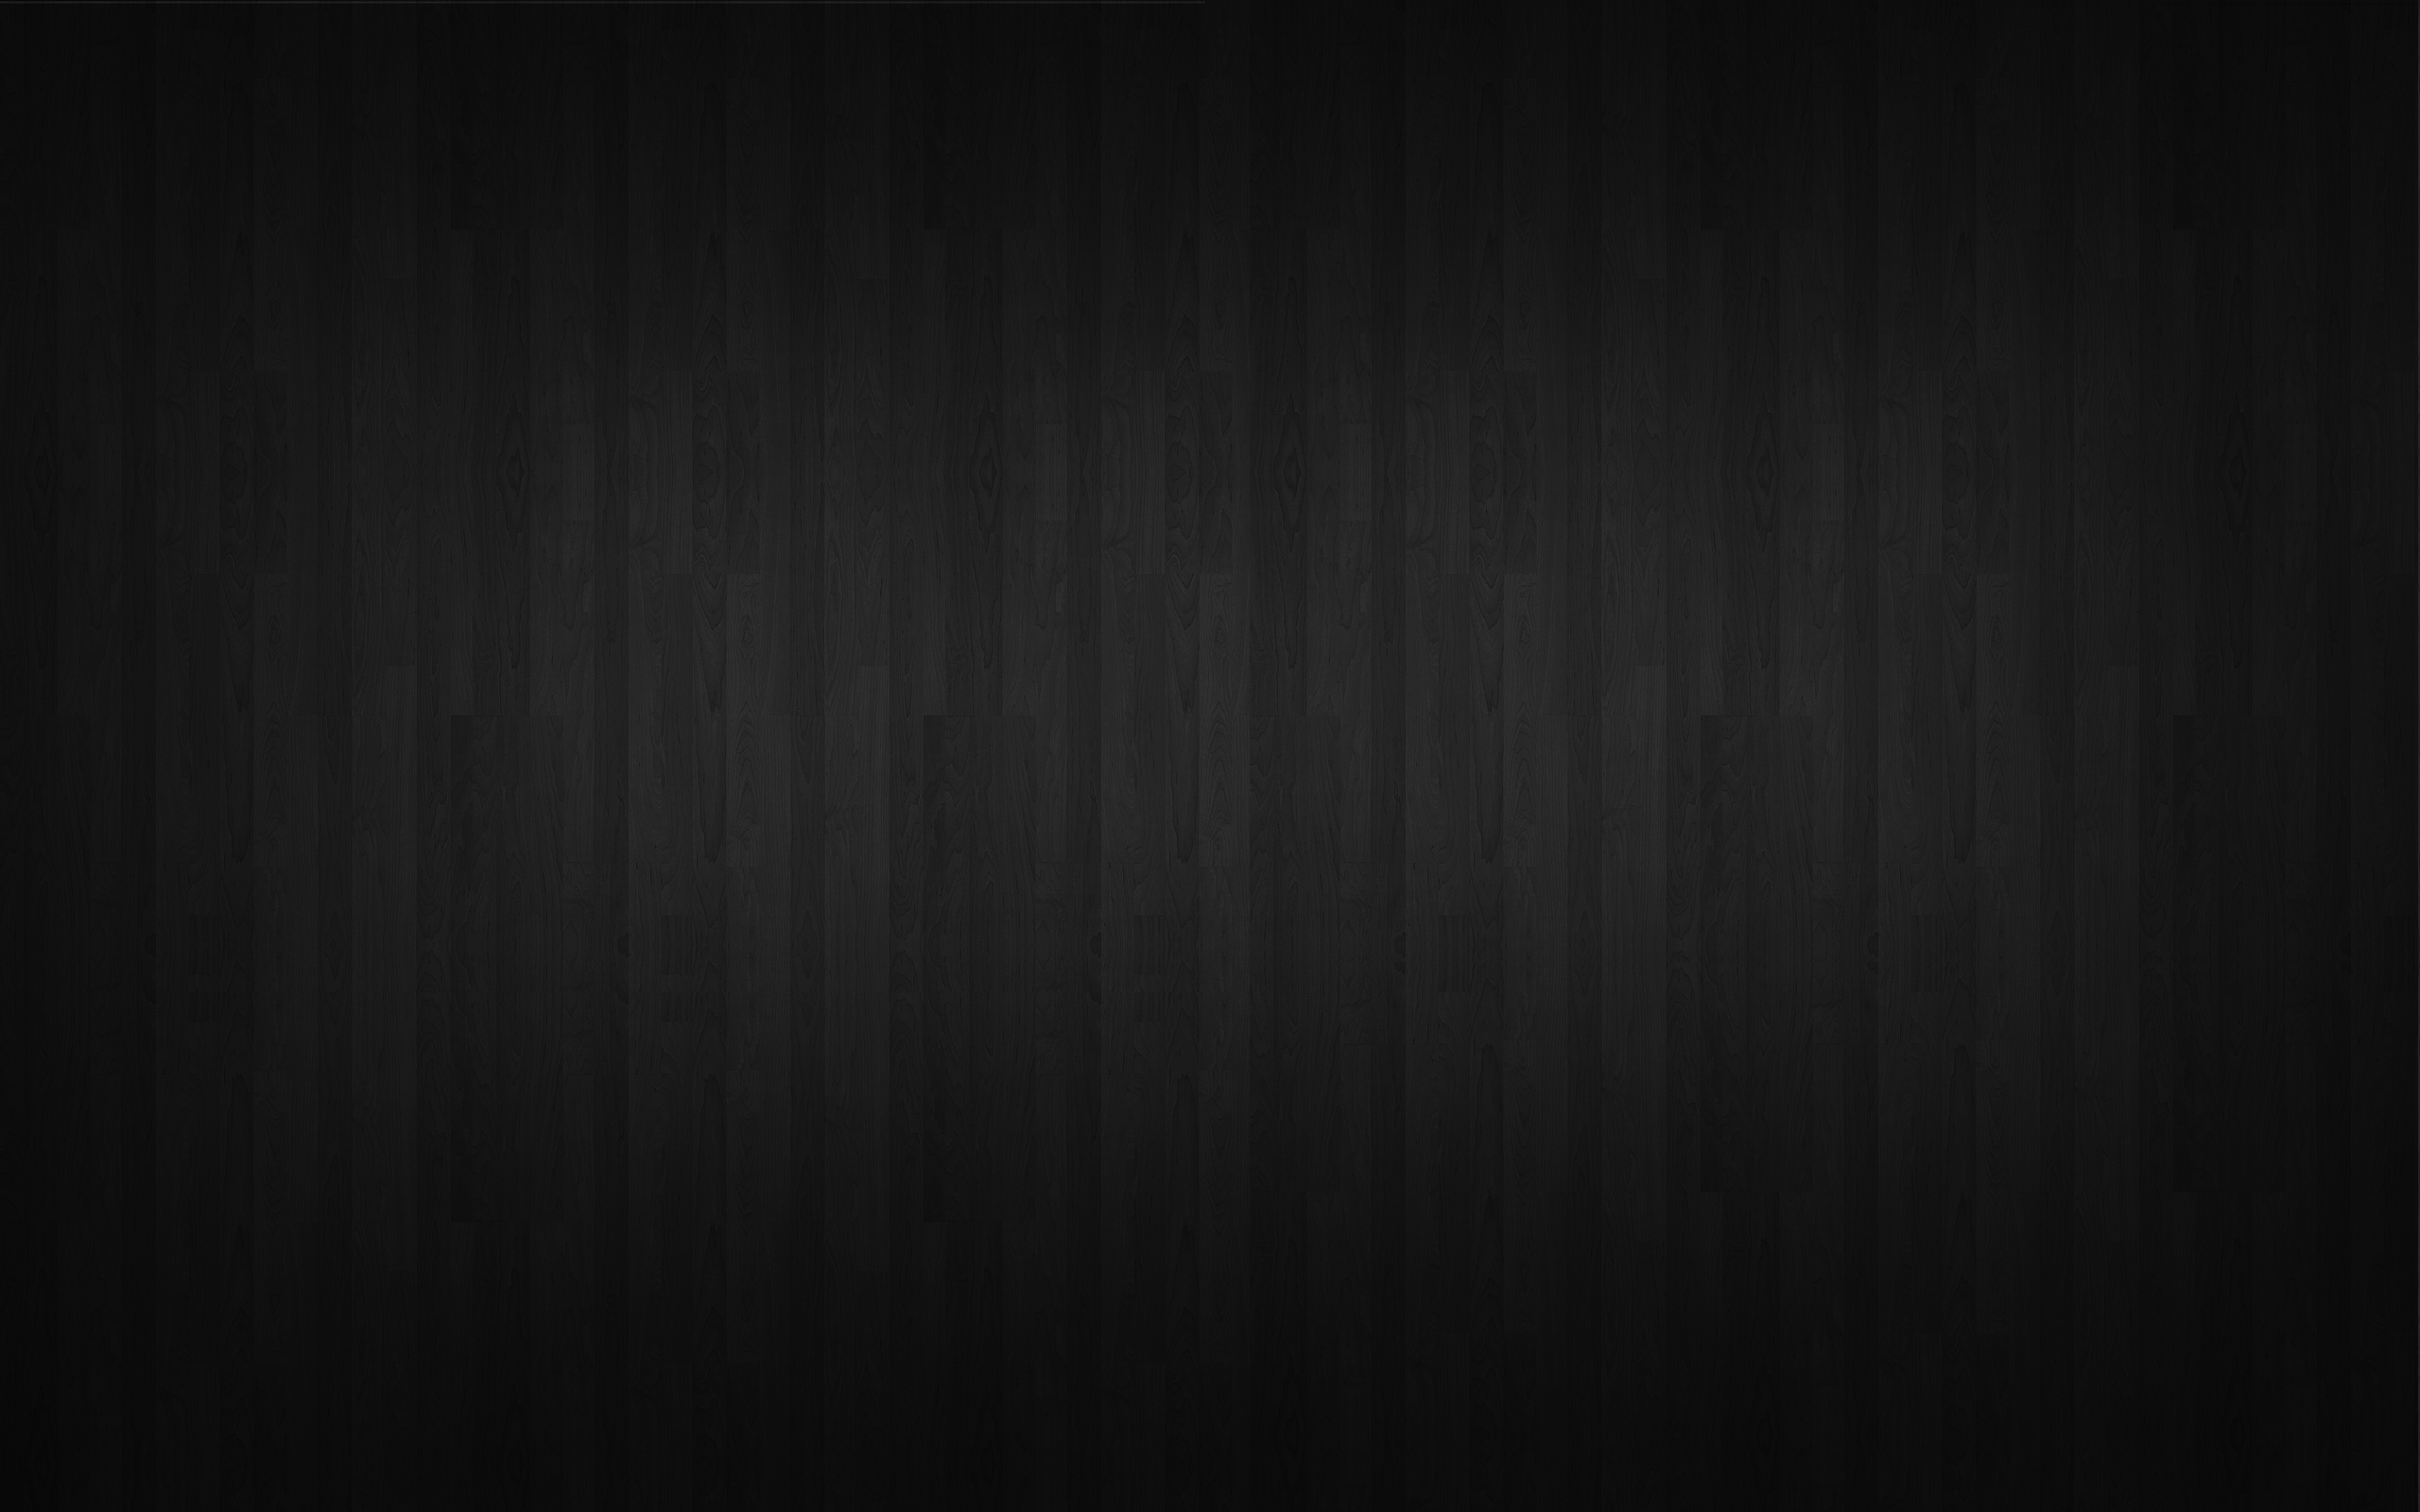 wallpapers black wood 2560x1600 1382 hd wallpapers background. Black Bedroom Furniture Sets. Home Design Ideas